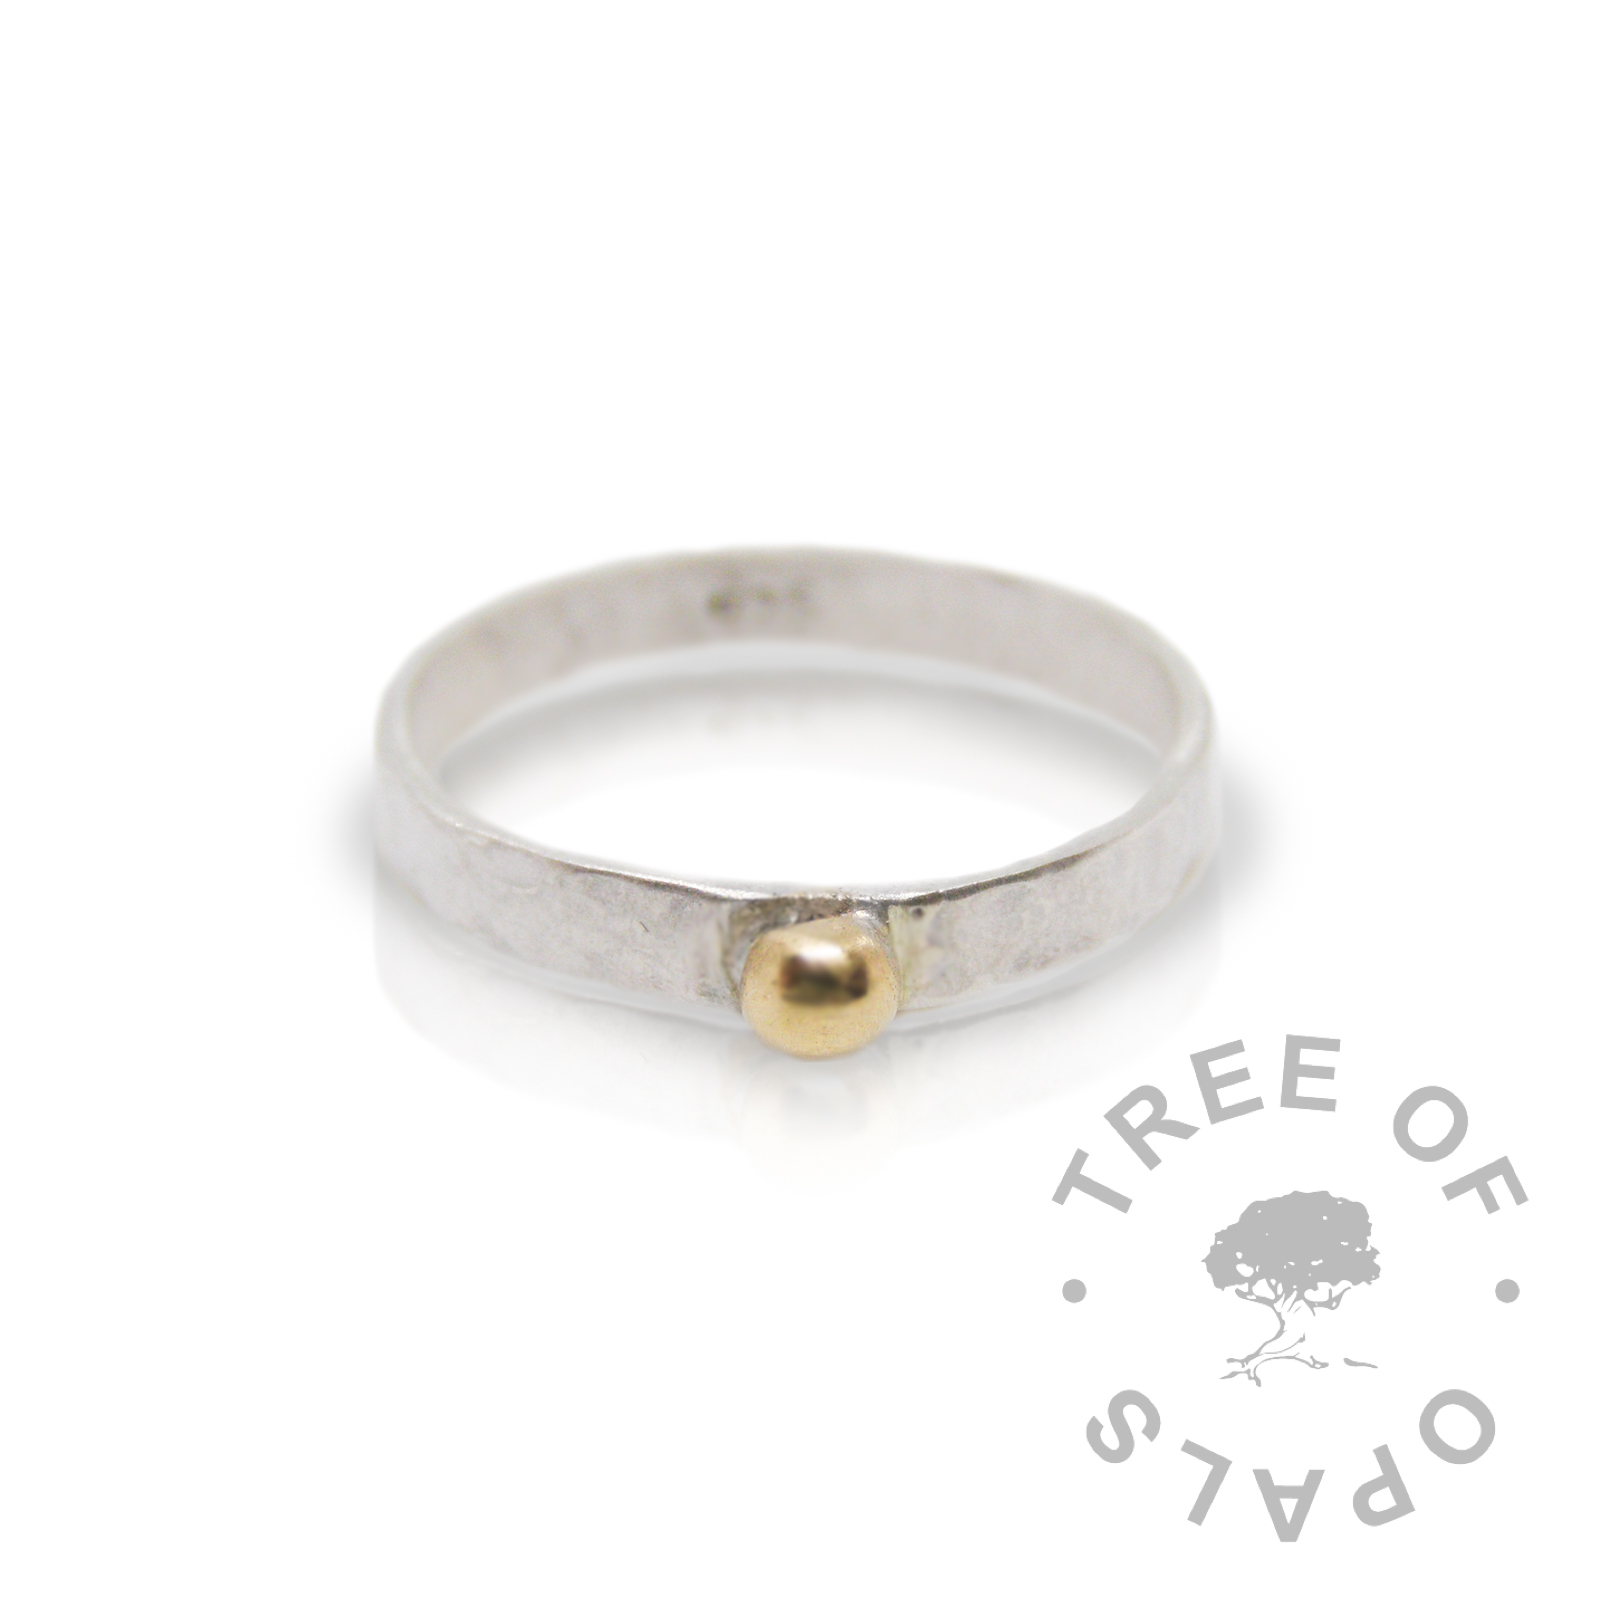 textured wide band ring with 14ct gold ball accent